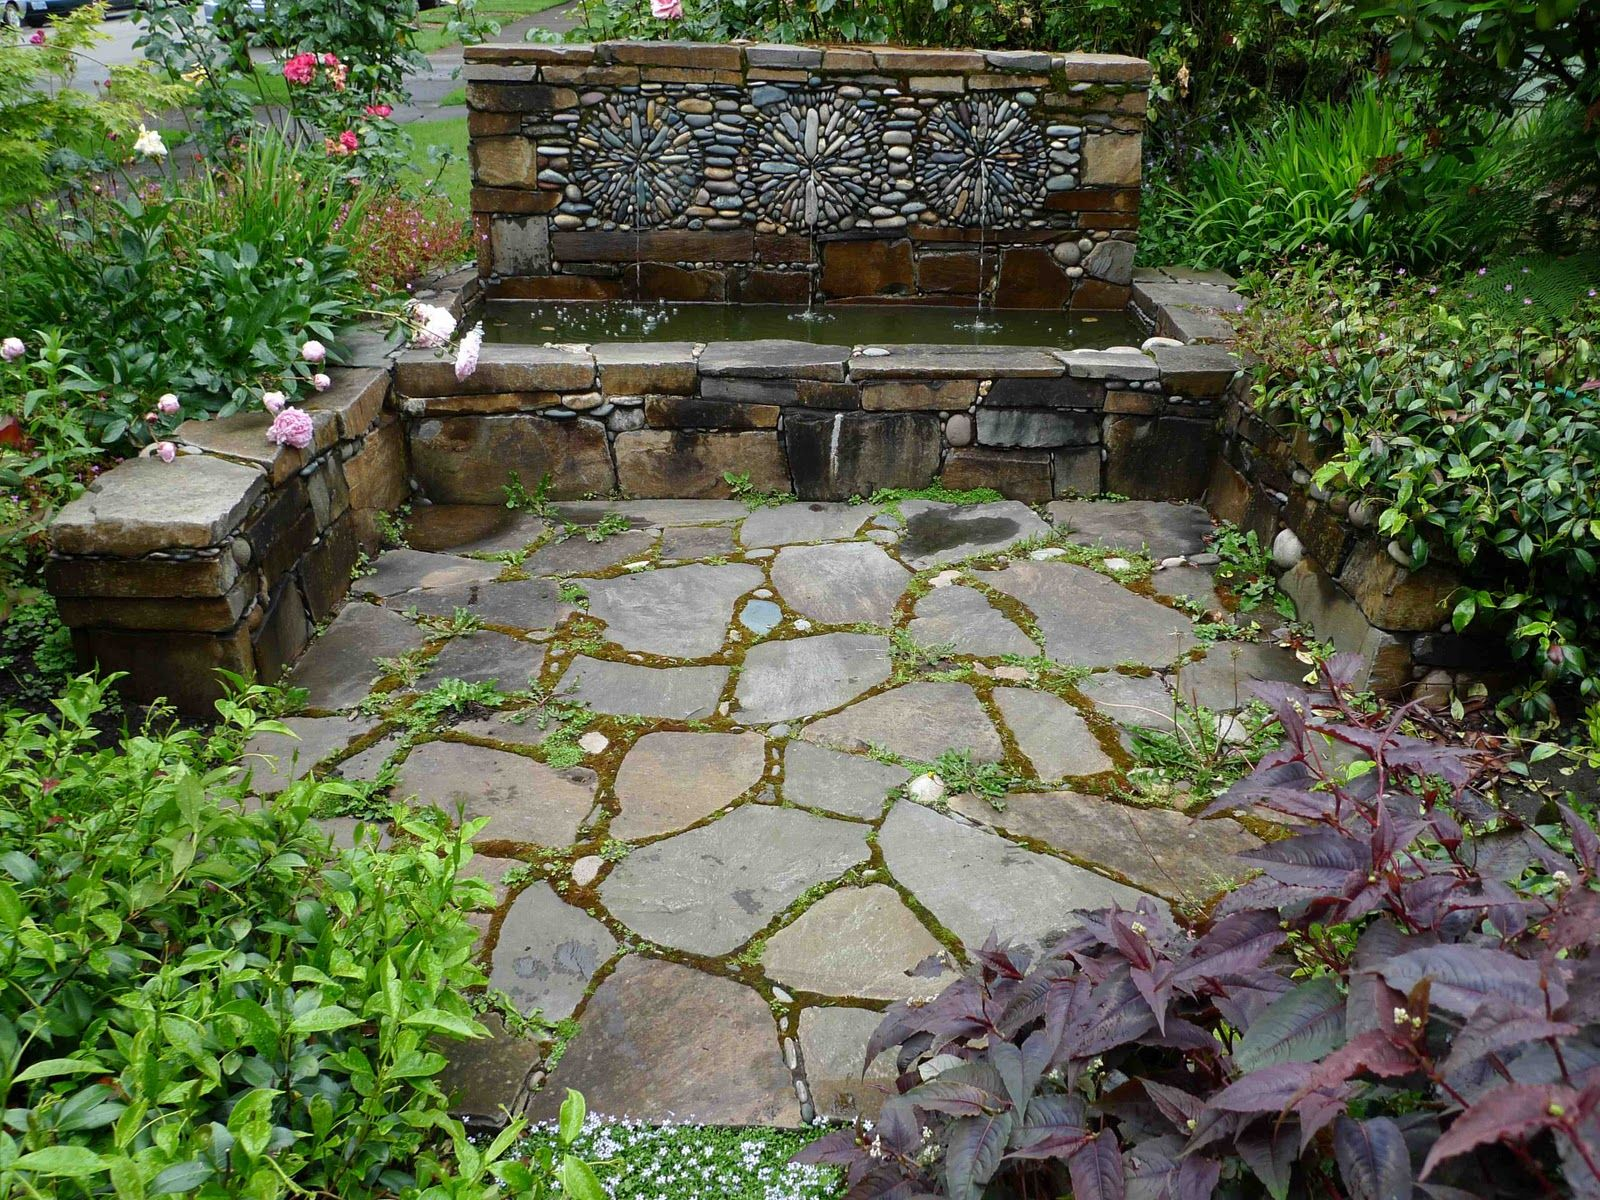 Ideas On Garden Designs garden designs ideas ideas garden excellent basic tips on how to create small garden designs garden Gardening Design Ideas Garden Design Professional Water Garden Design Visit Us Wwwsteelheadconstructioncomabout Us Source